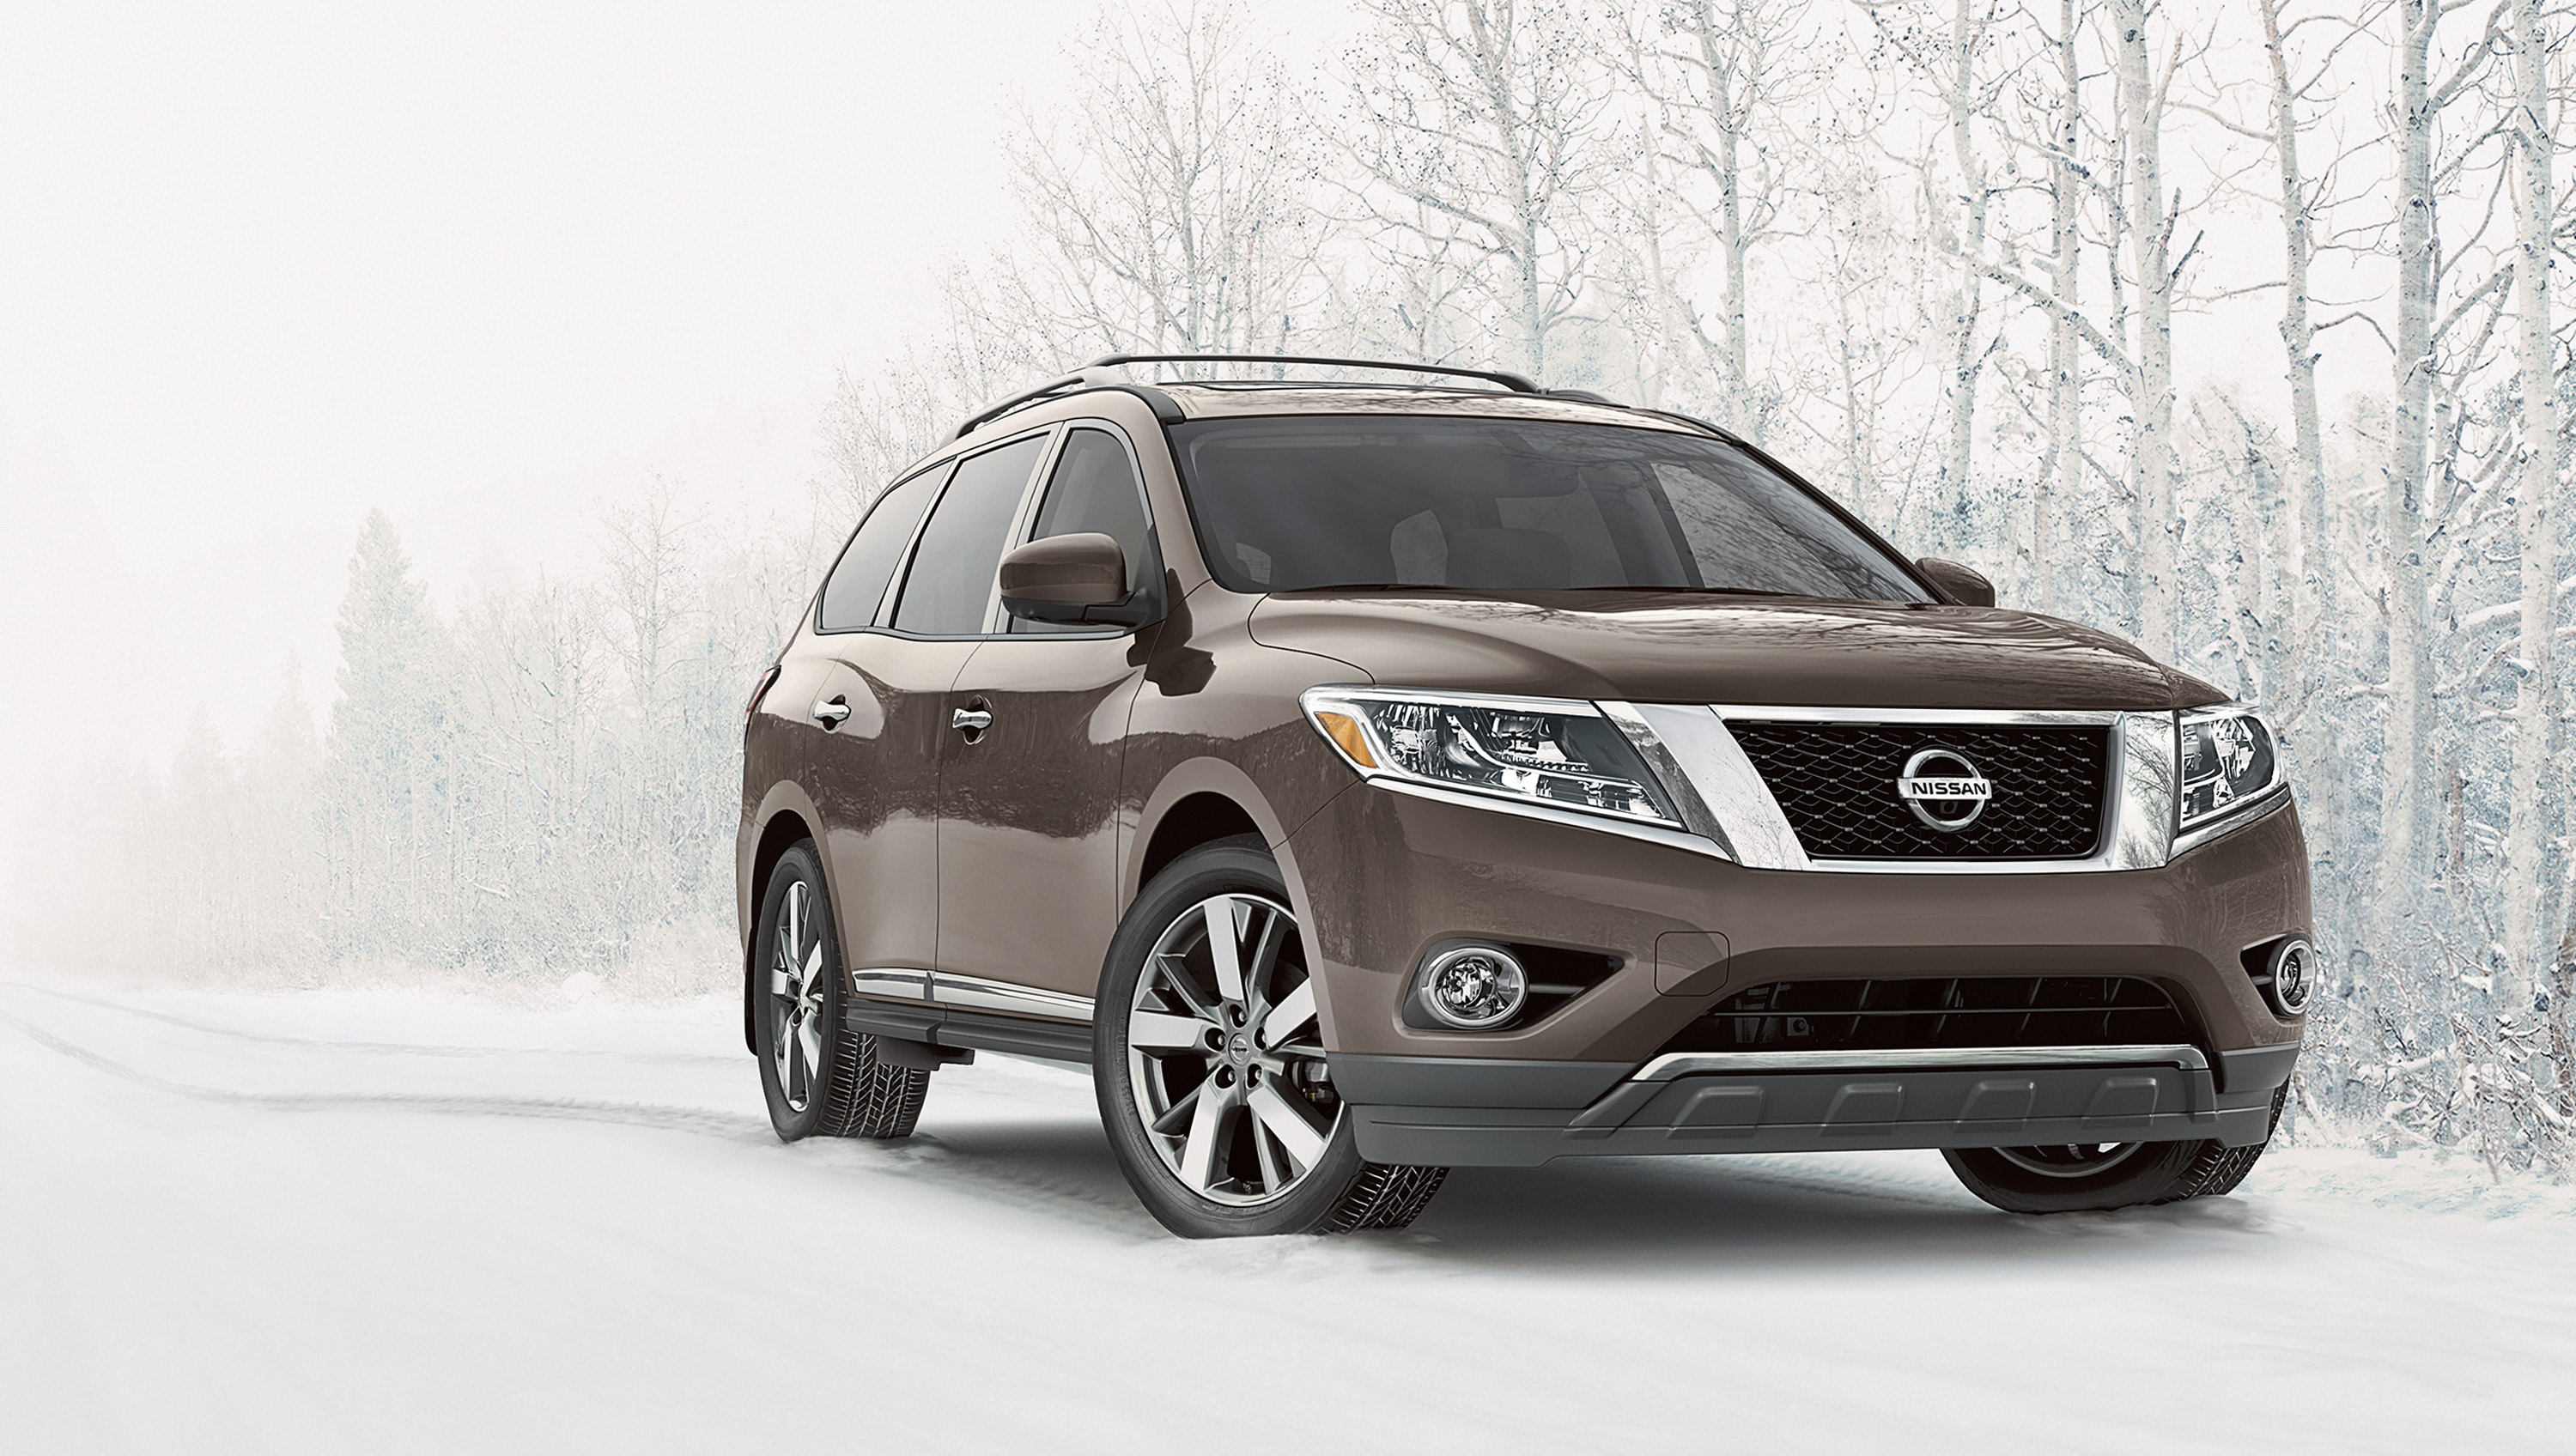 generation of has fourth gallery news always road about one a like sale carcostcanada re pathfinder nissan lamenting to been platinum unless the metamorphosis lot its still for there test you those review